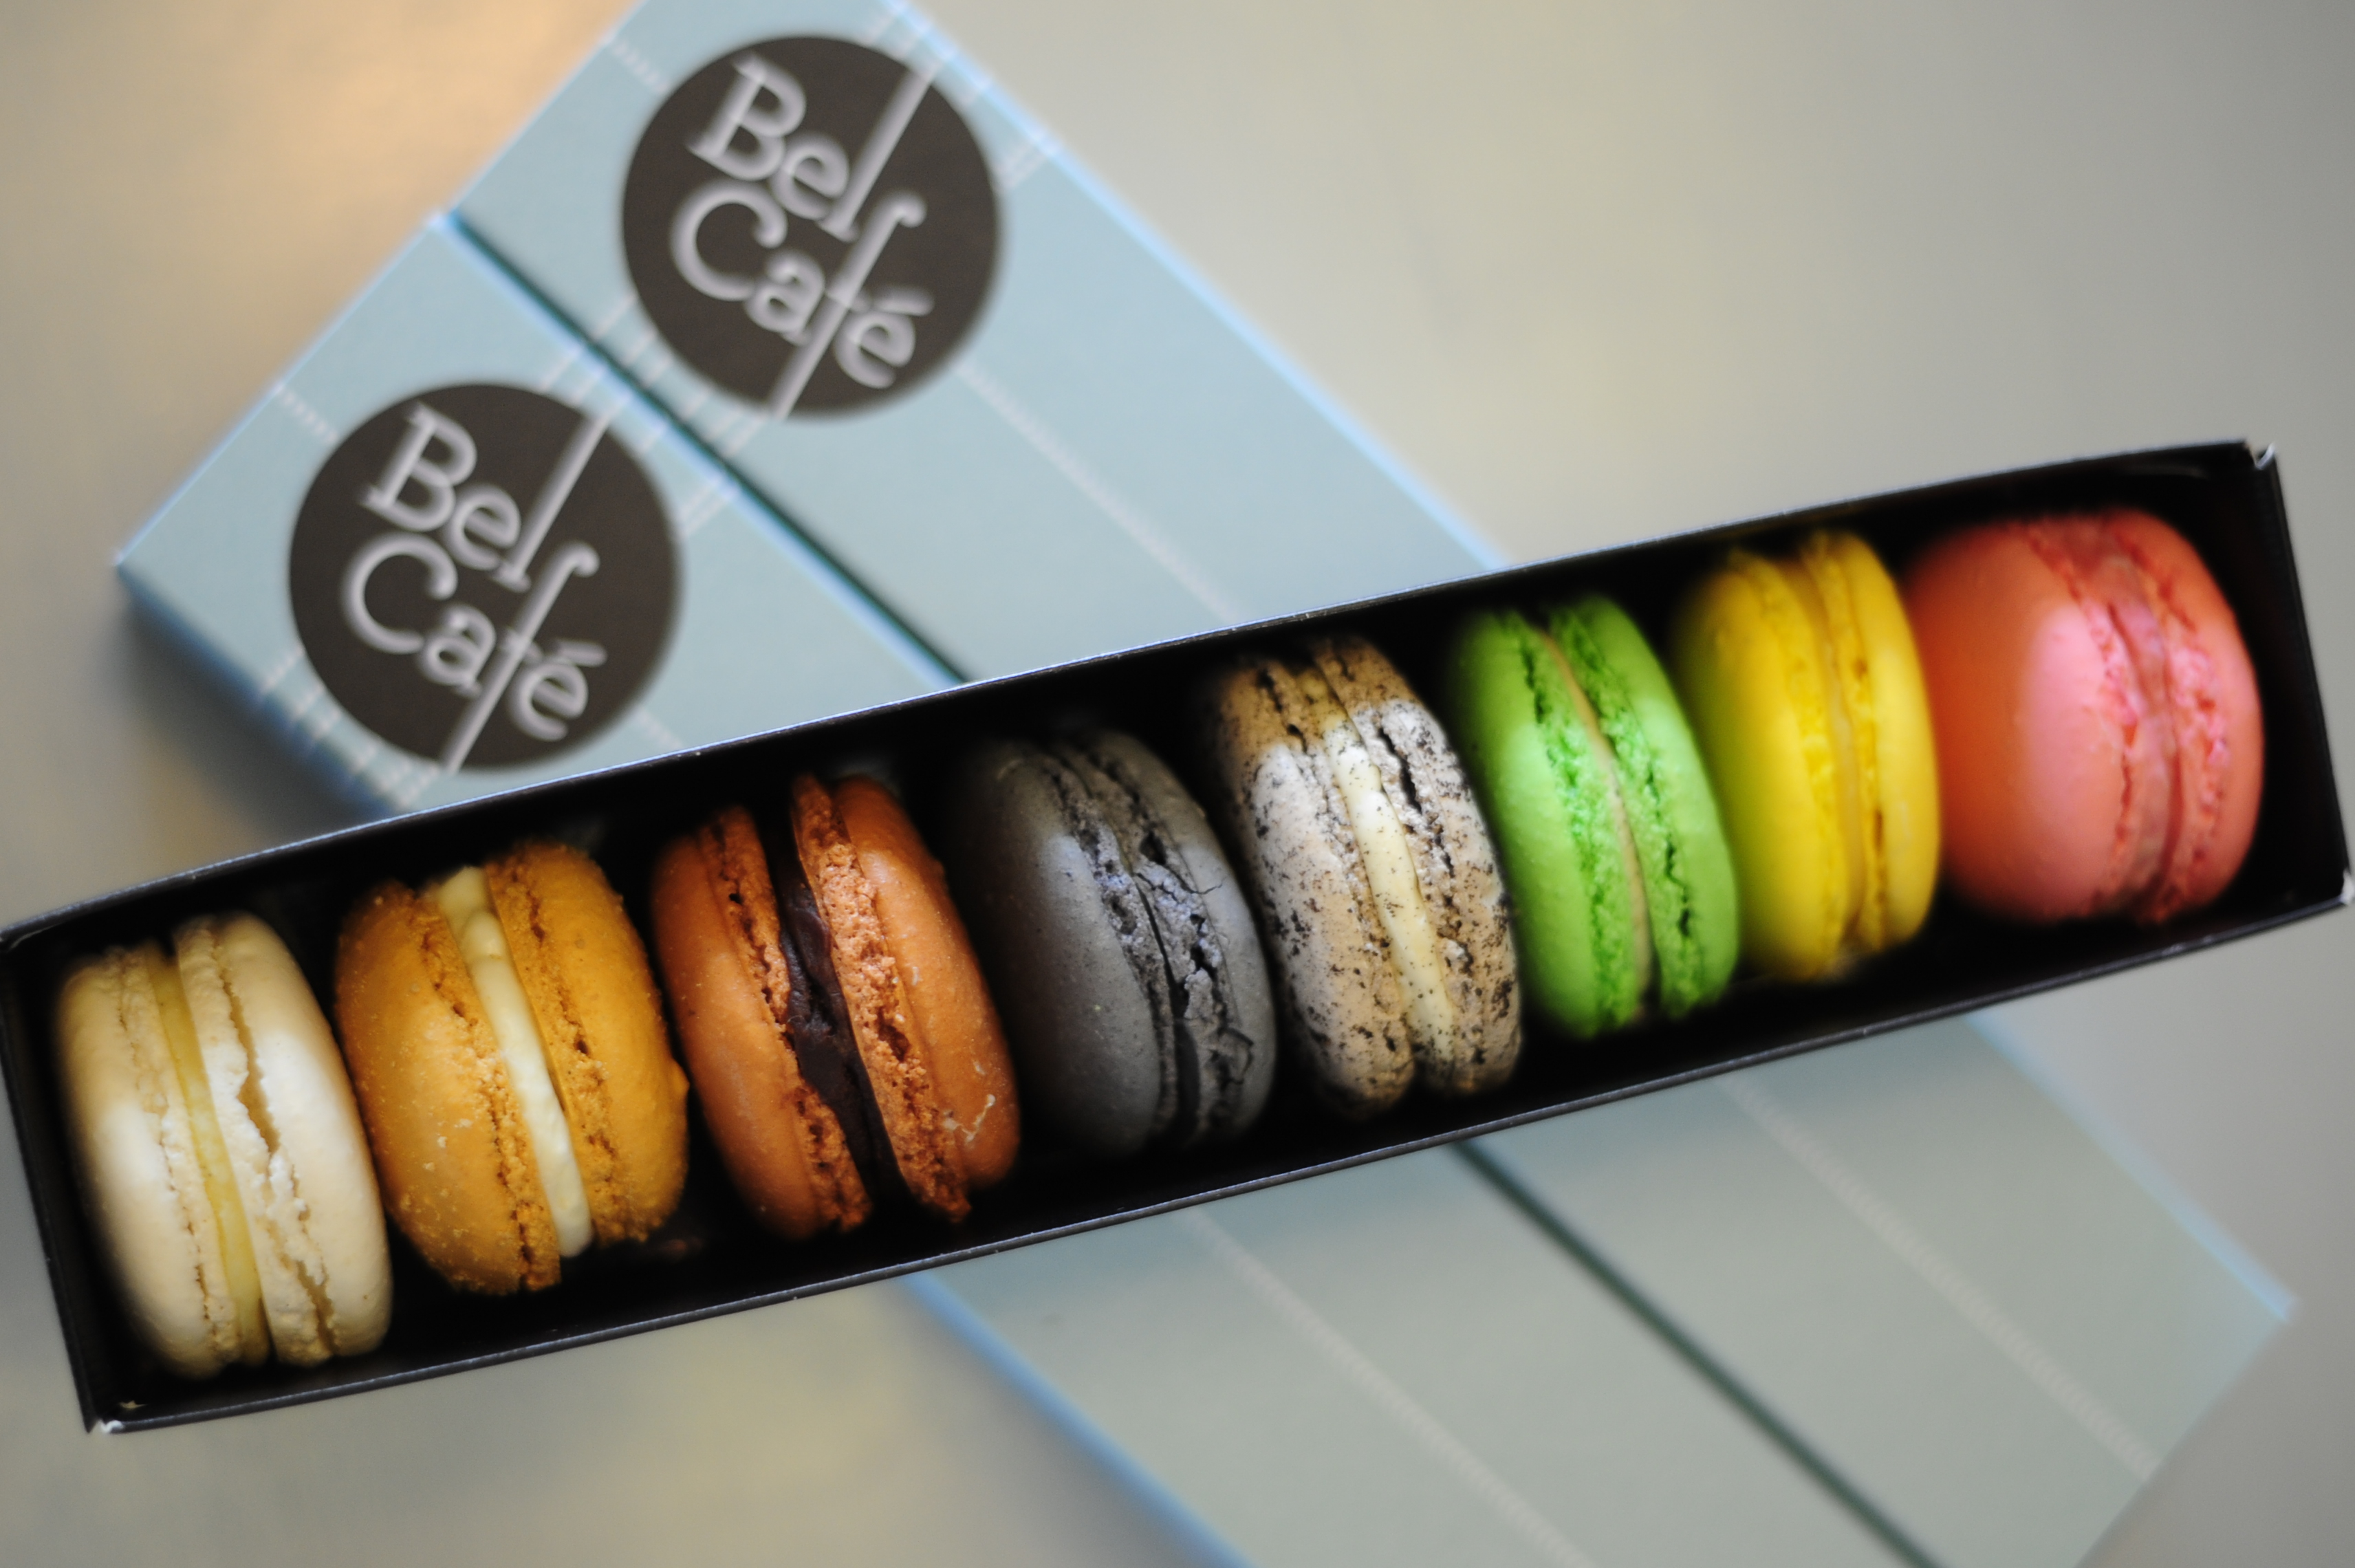 Image result for bel cafe macarons